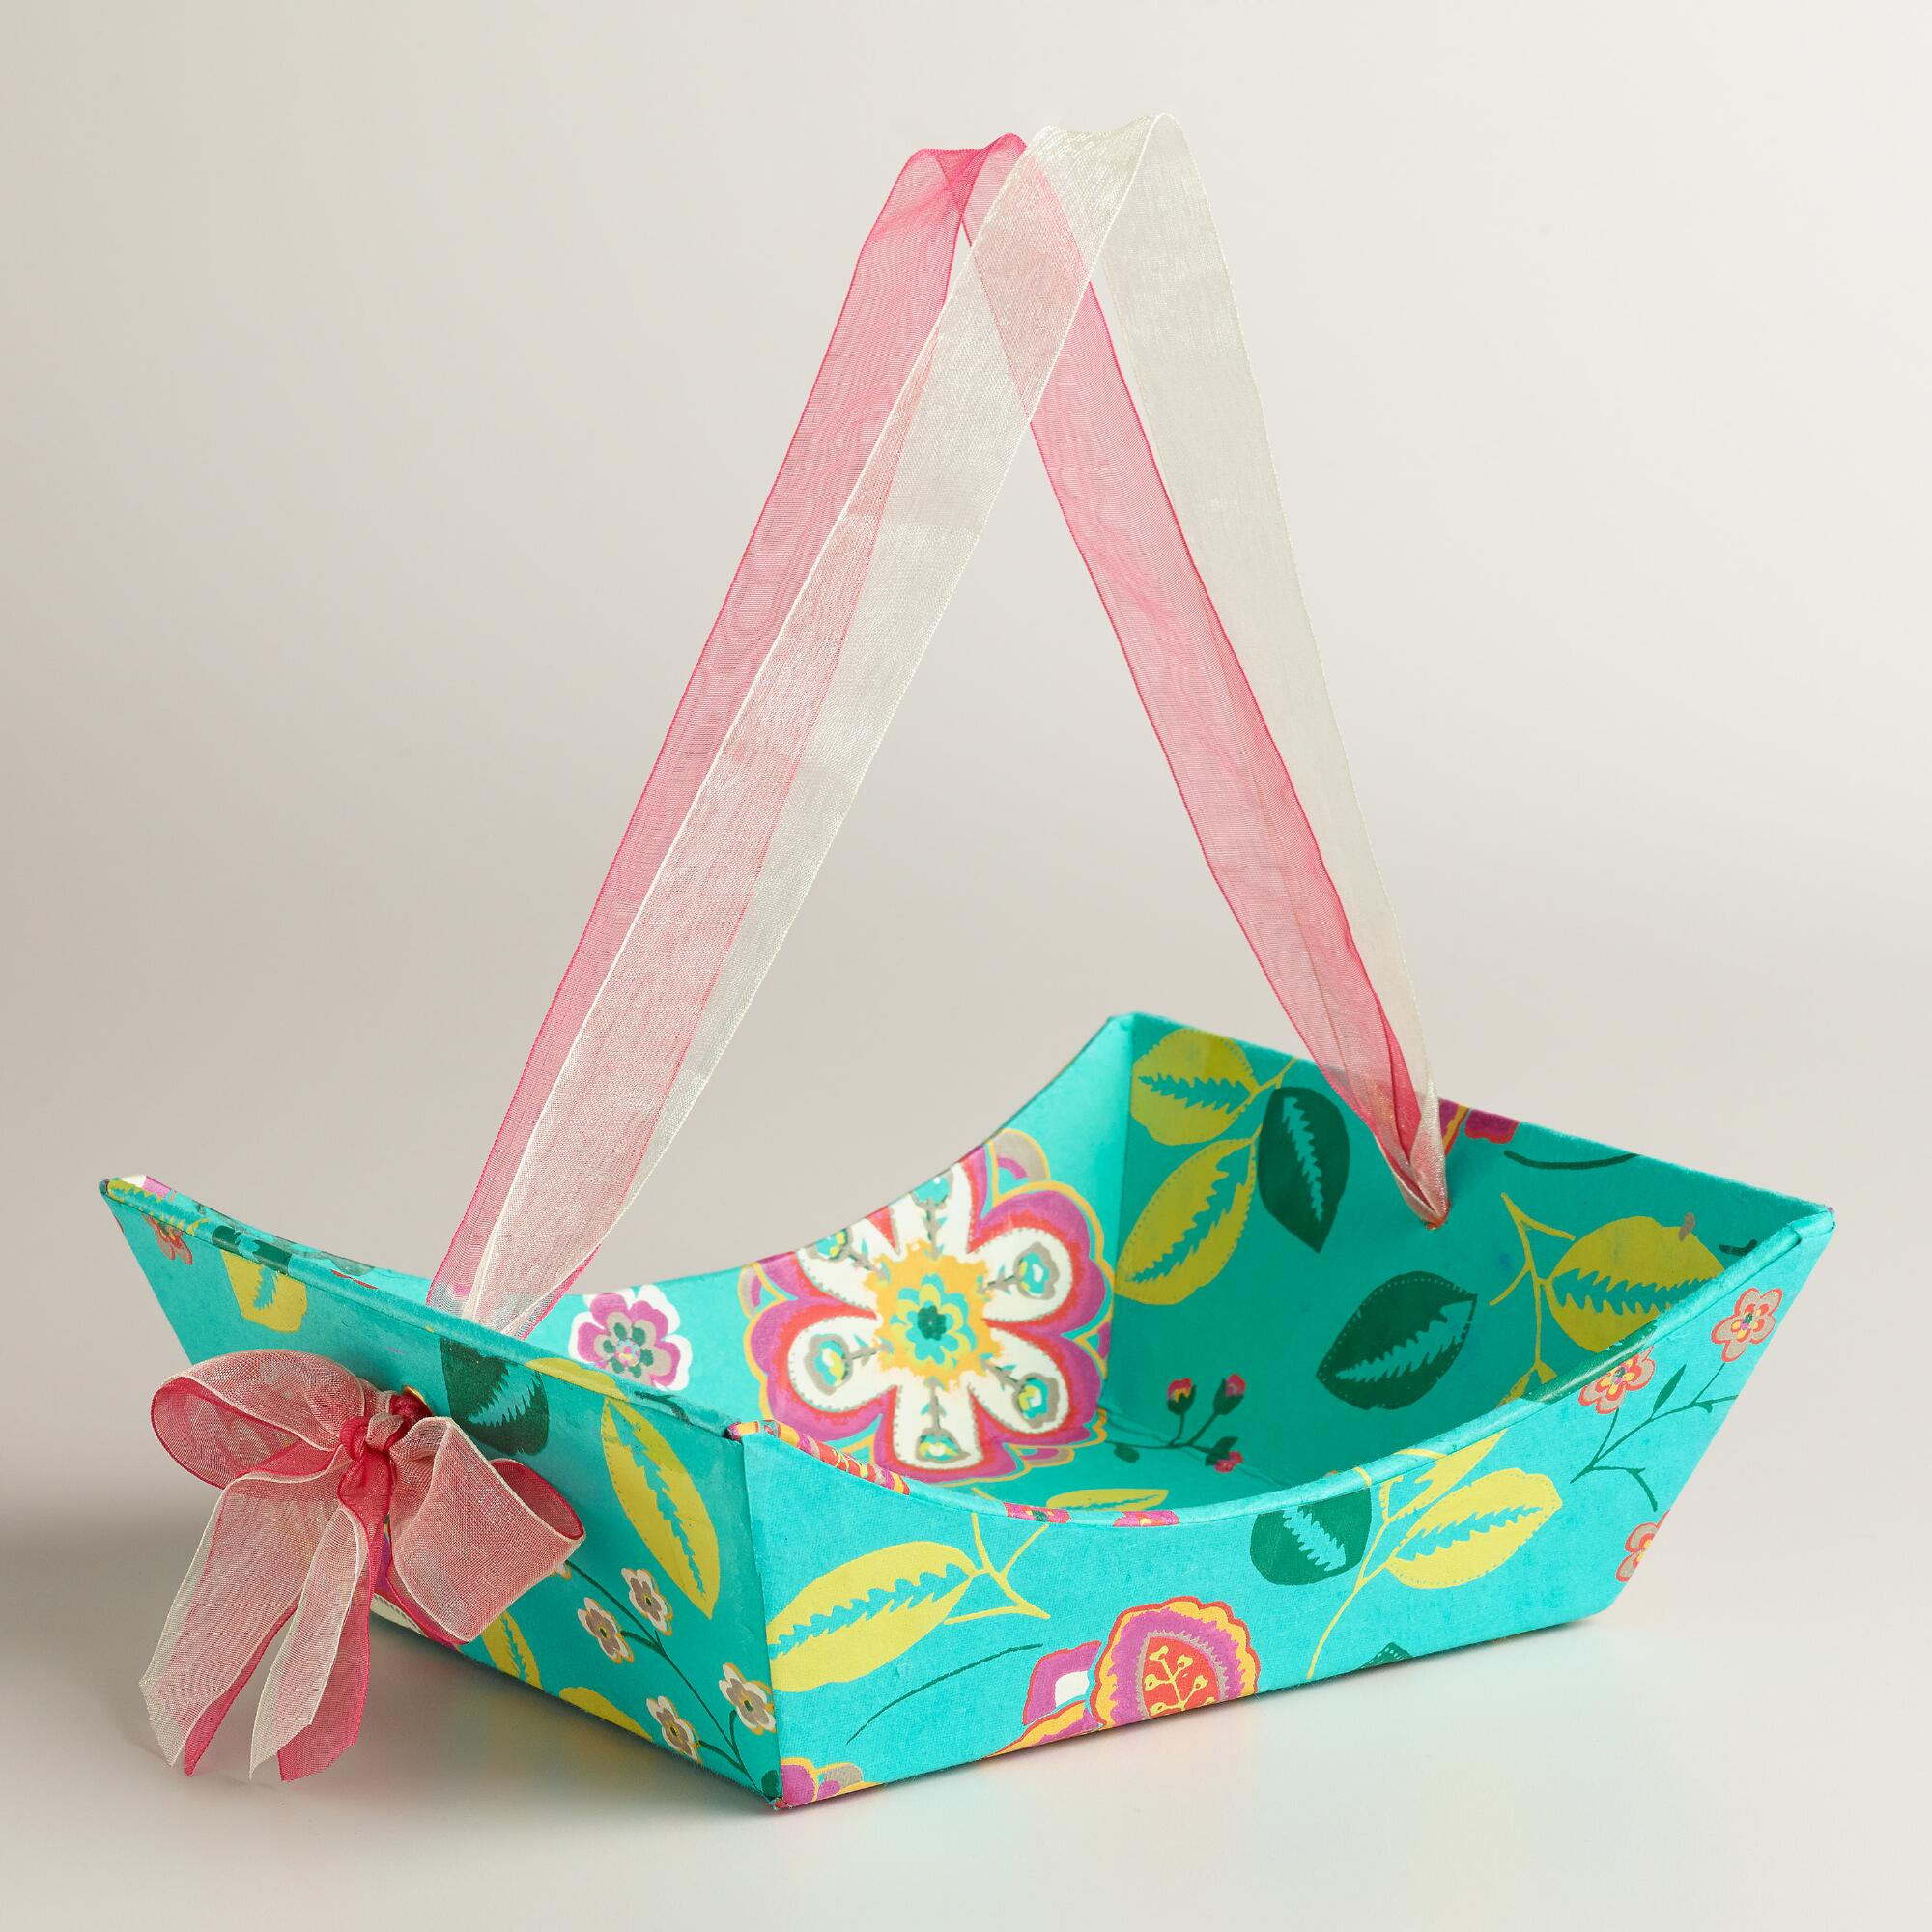 Handmade Basket Gifts : Small floral louisa handmade paper gift basket world market